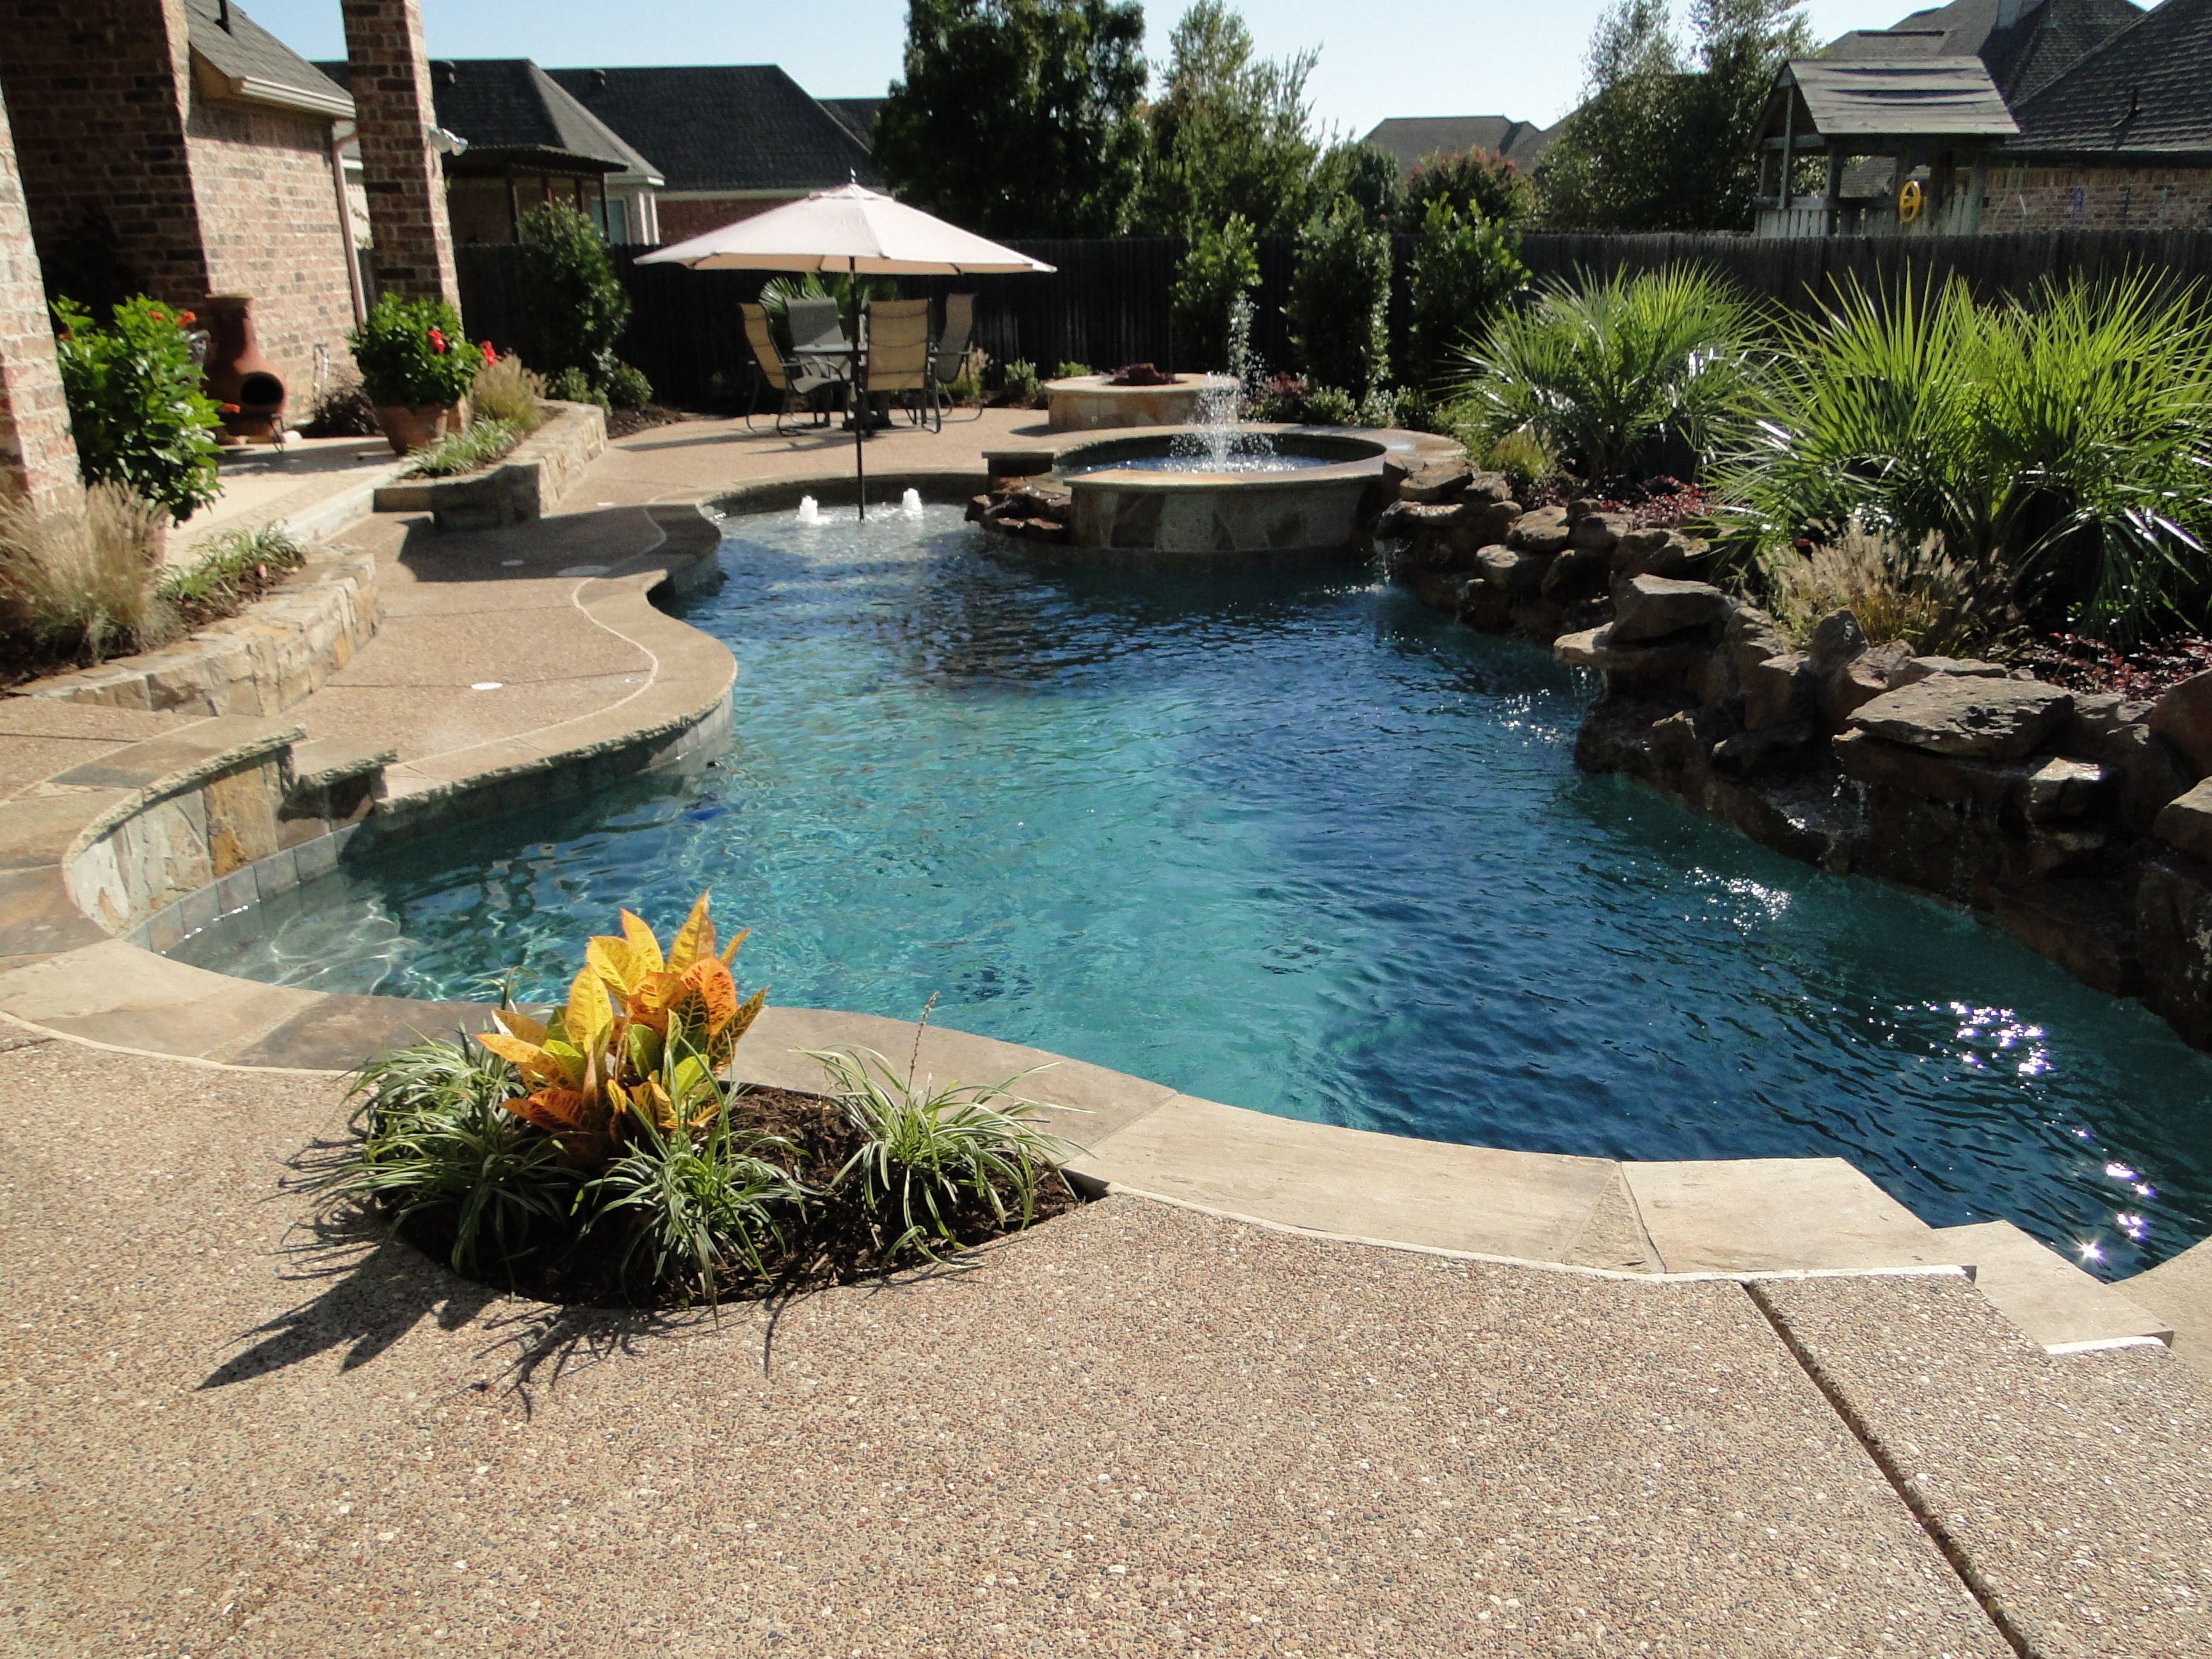 backyard landscaping pool design read more at - Pool Landscaping